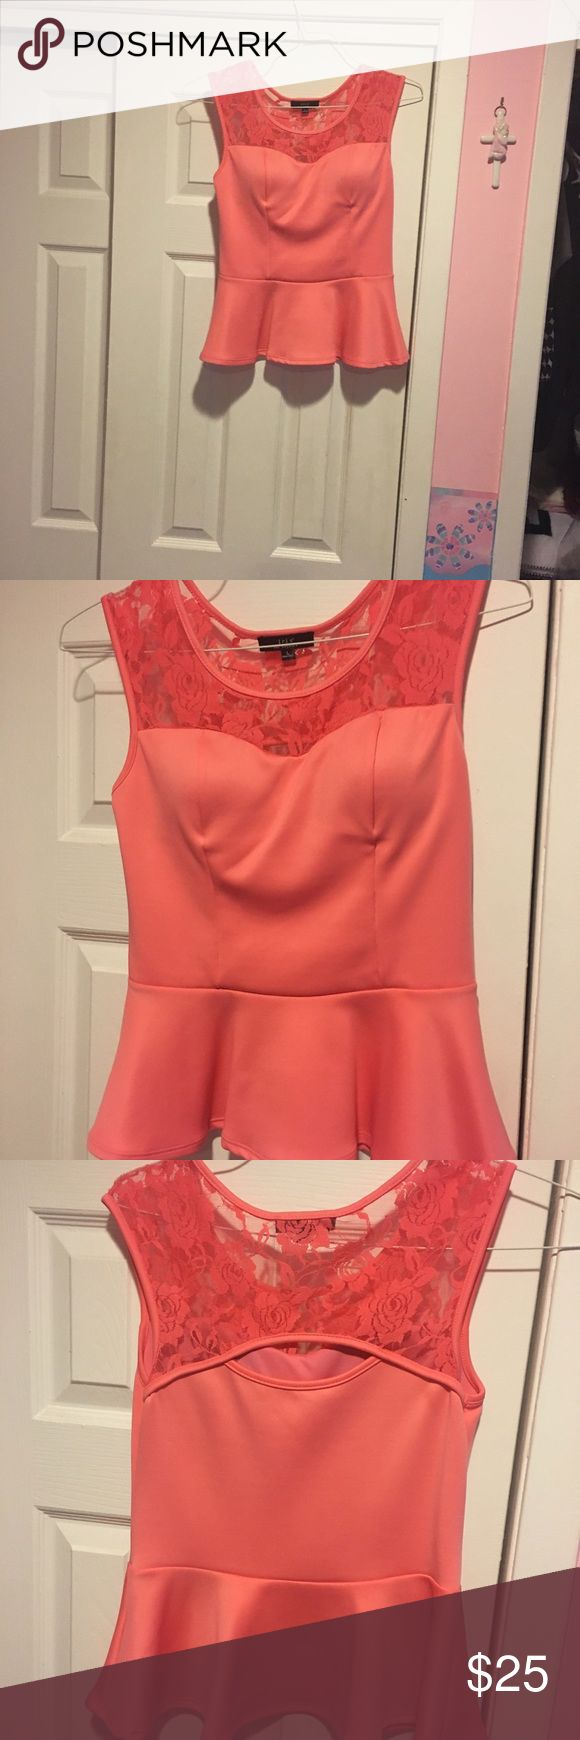 Iris LA Peplum Top Salmon peplum top with lace sleeves. Cups provide padding. Size large. Tops Blouses